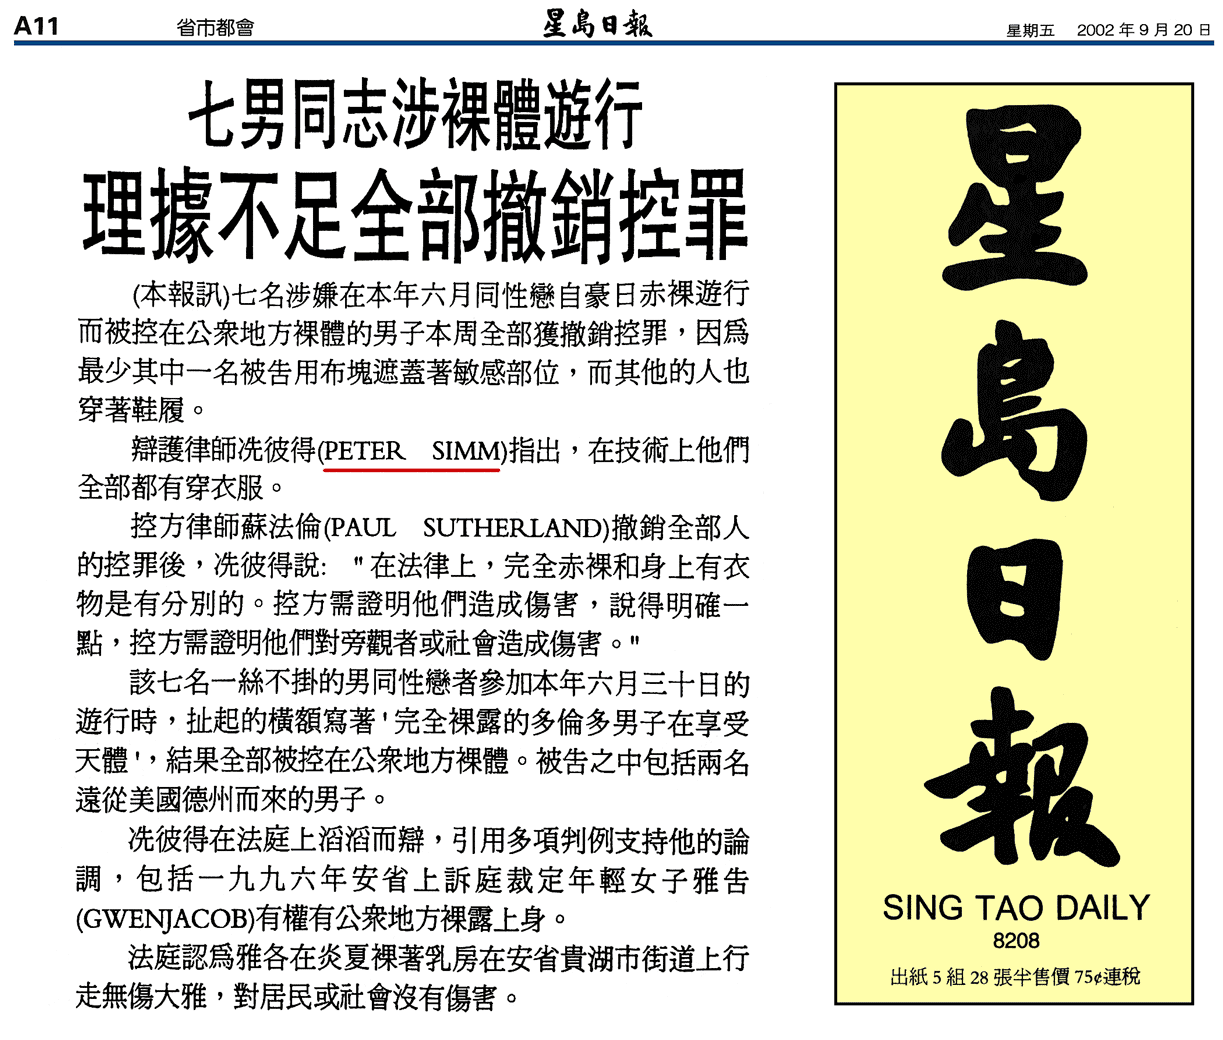 Sing Tao (Toronto) 2002 Simm convinces Crown to drop nudity charges against Pride marchers